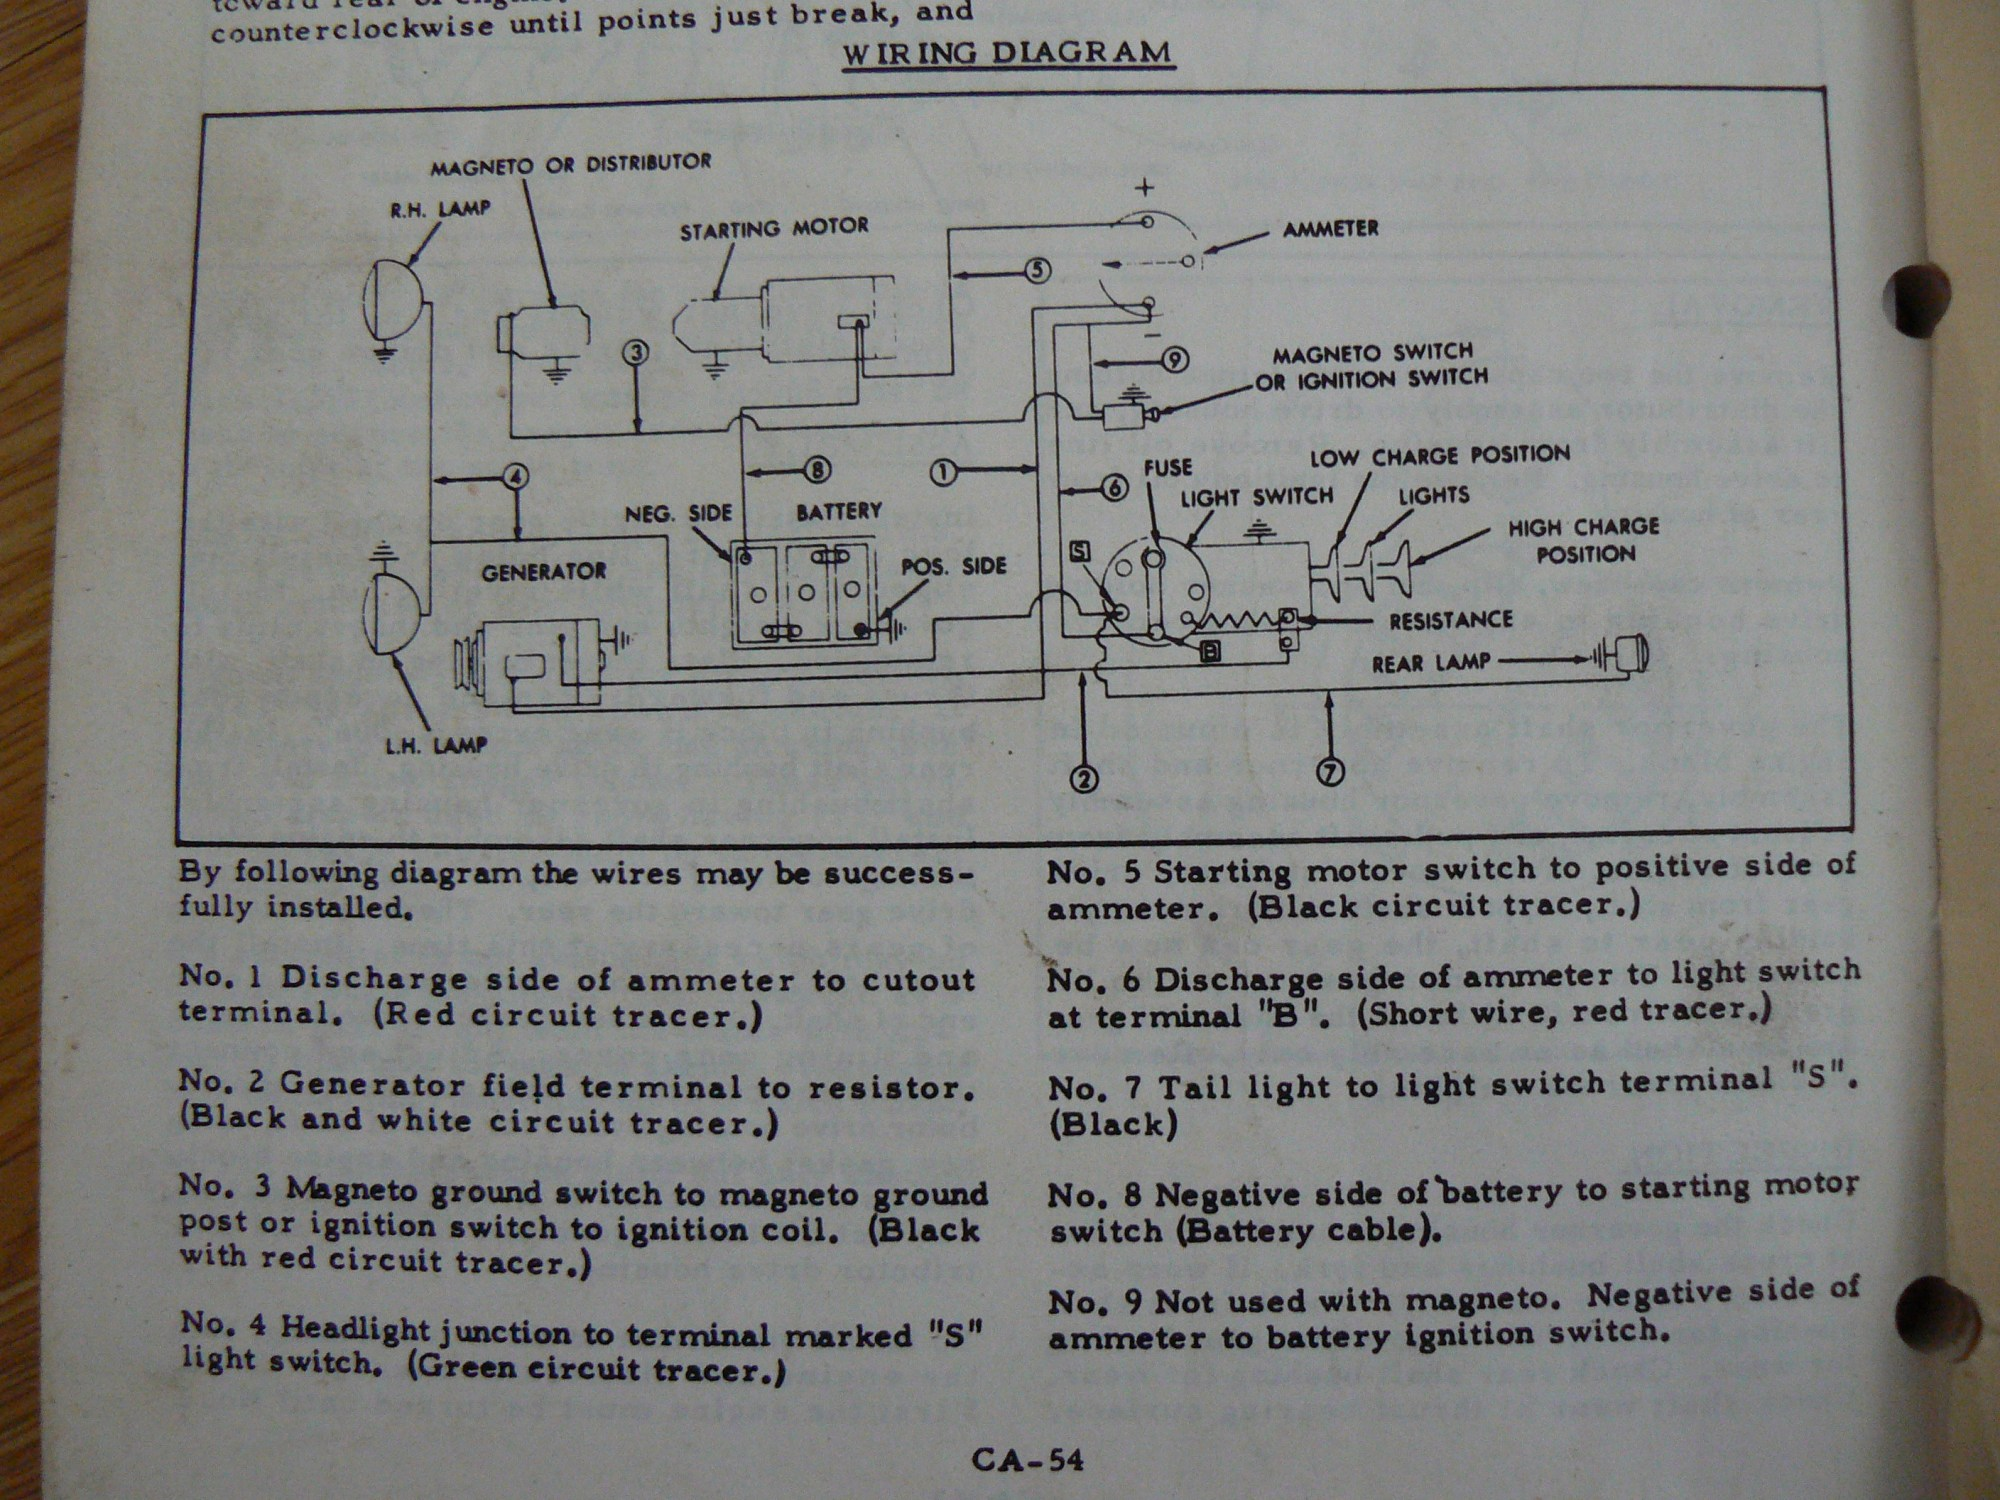 hight resolution of  allis chalmers magneto diagram online wiring diagram on allis chalmers 712 parts diagram